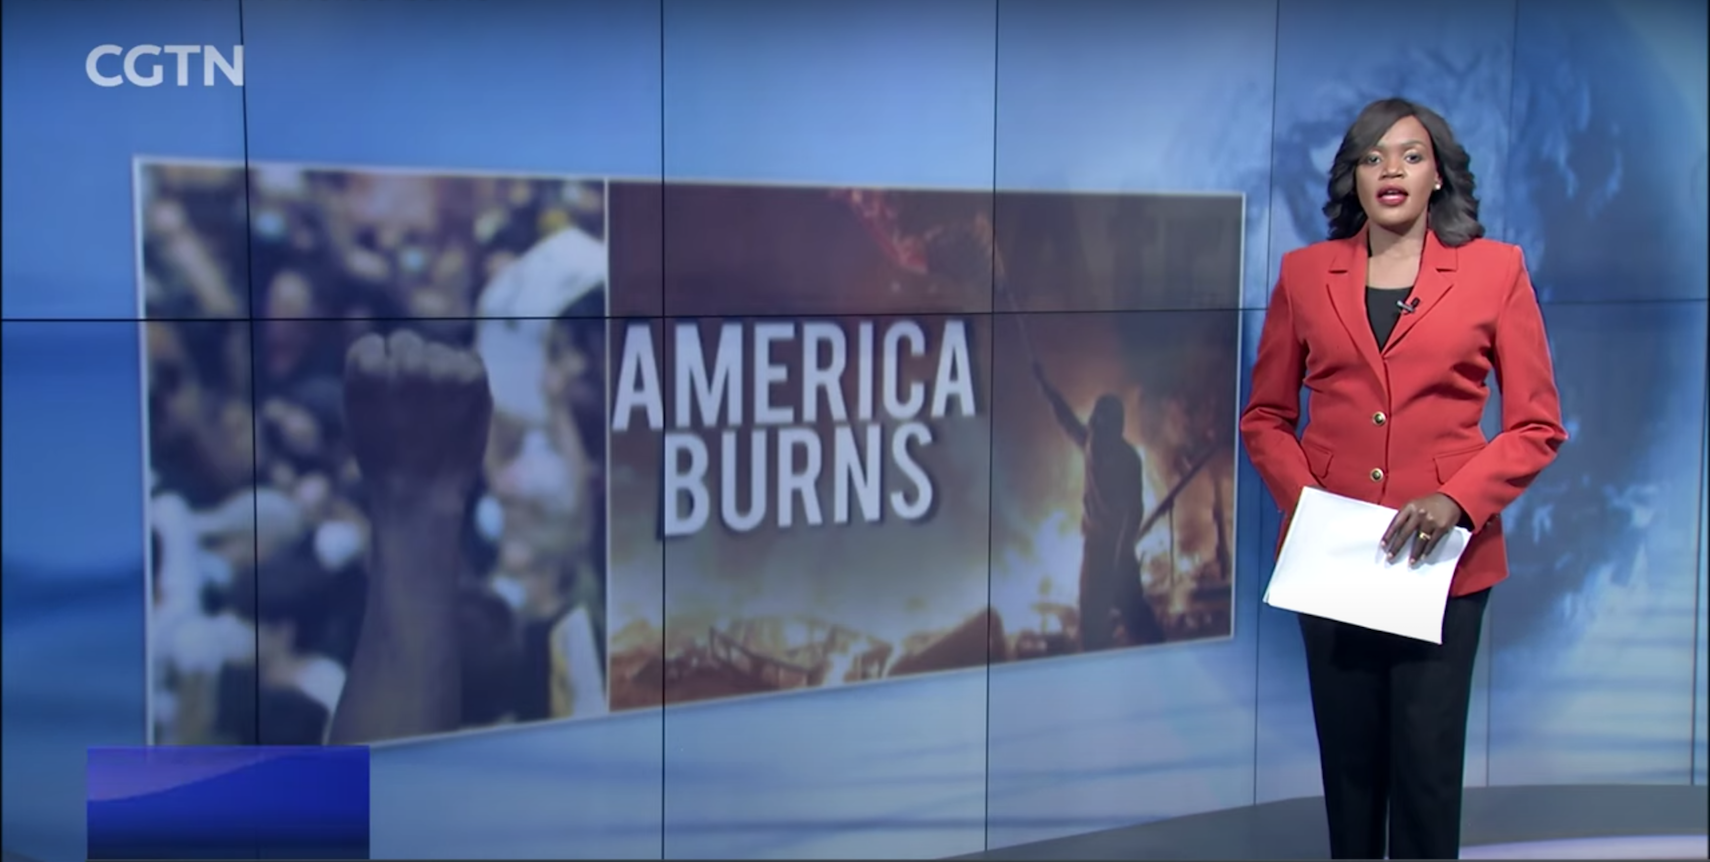 Talk Africa: America burns